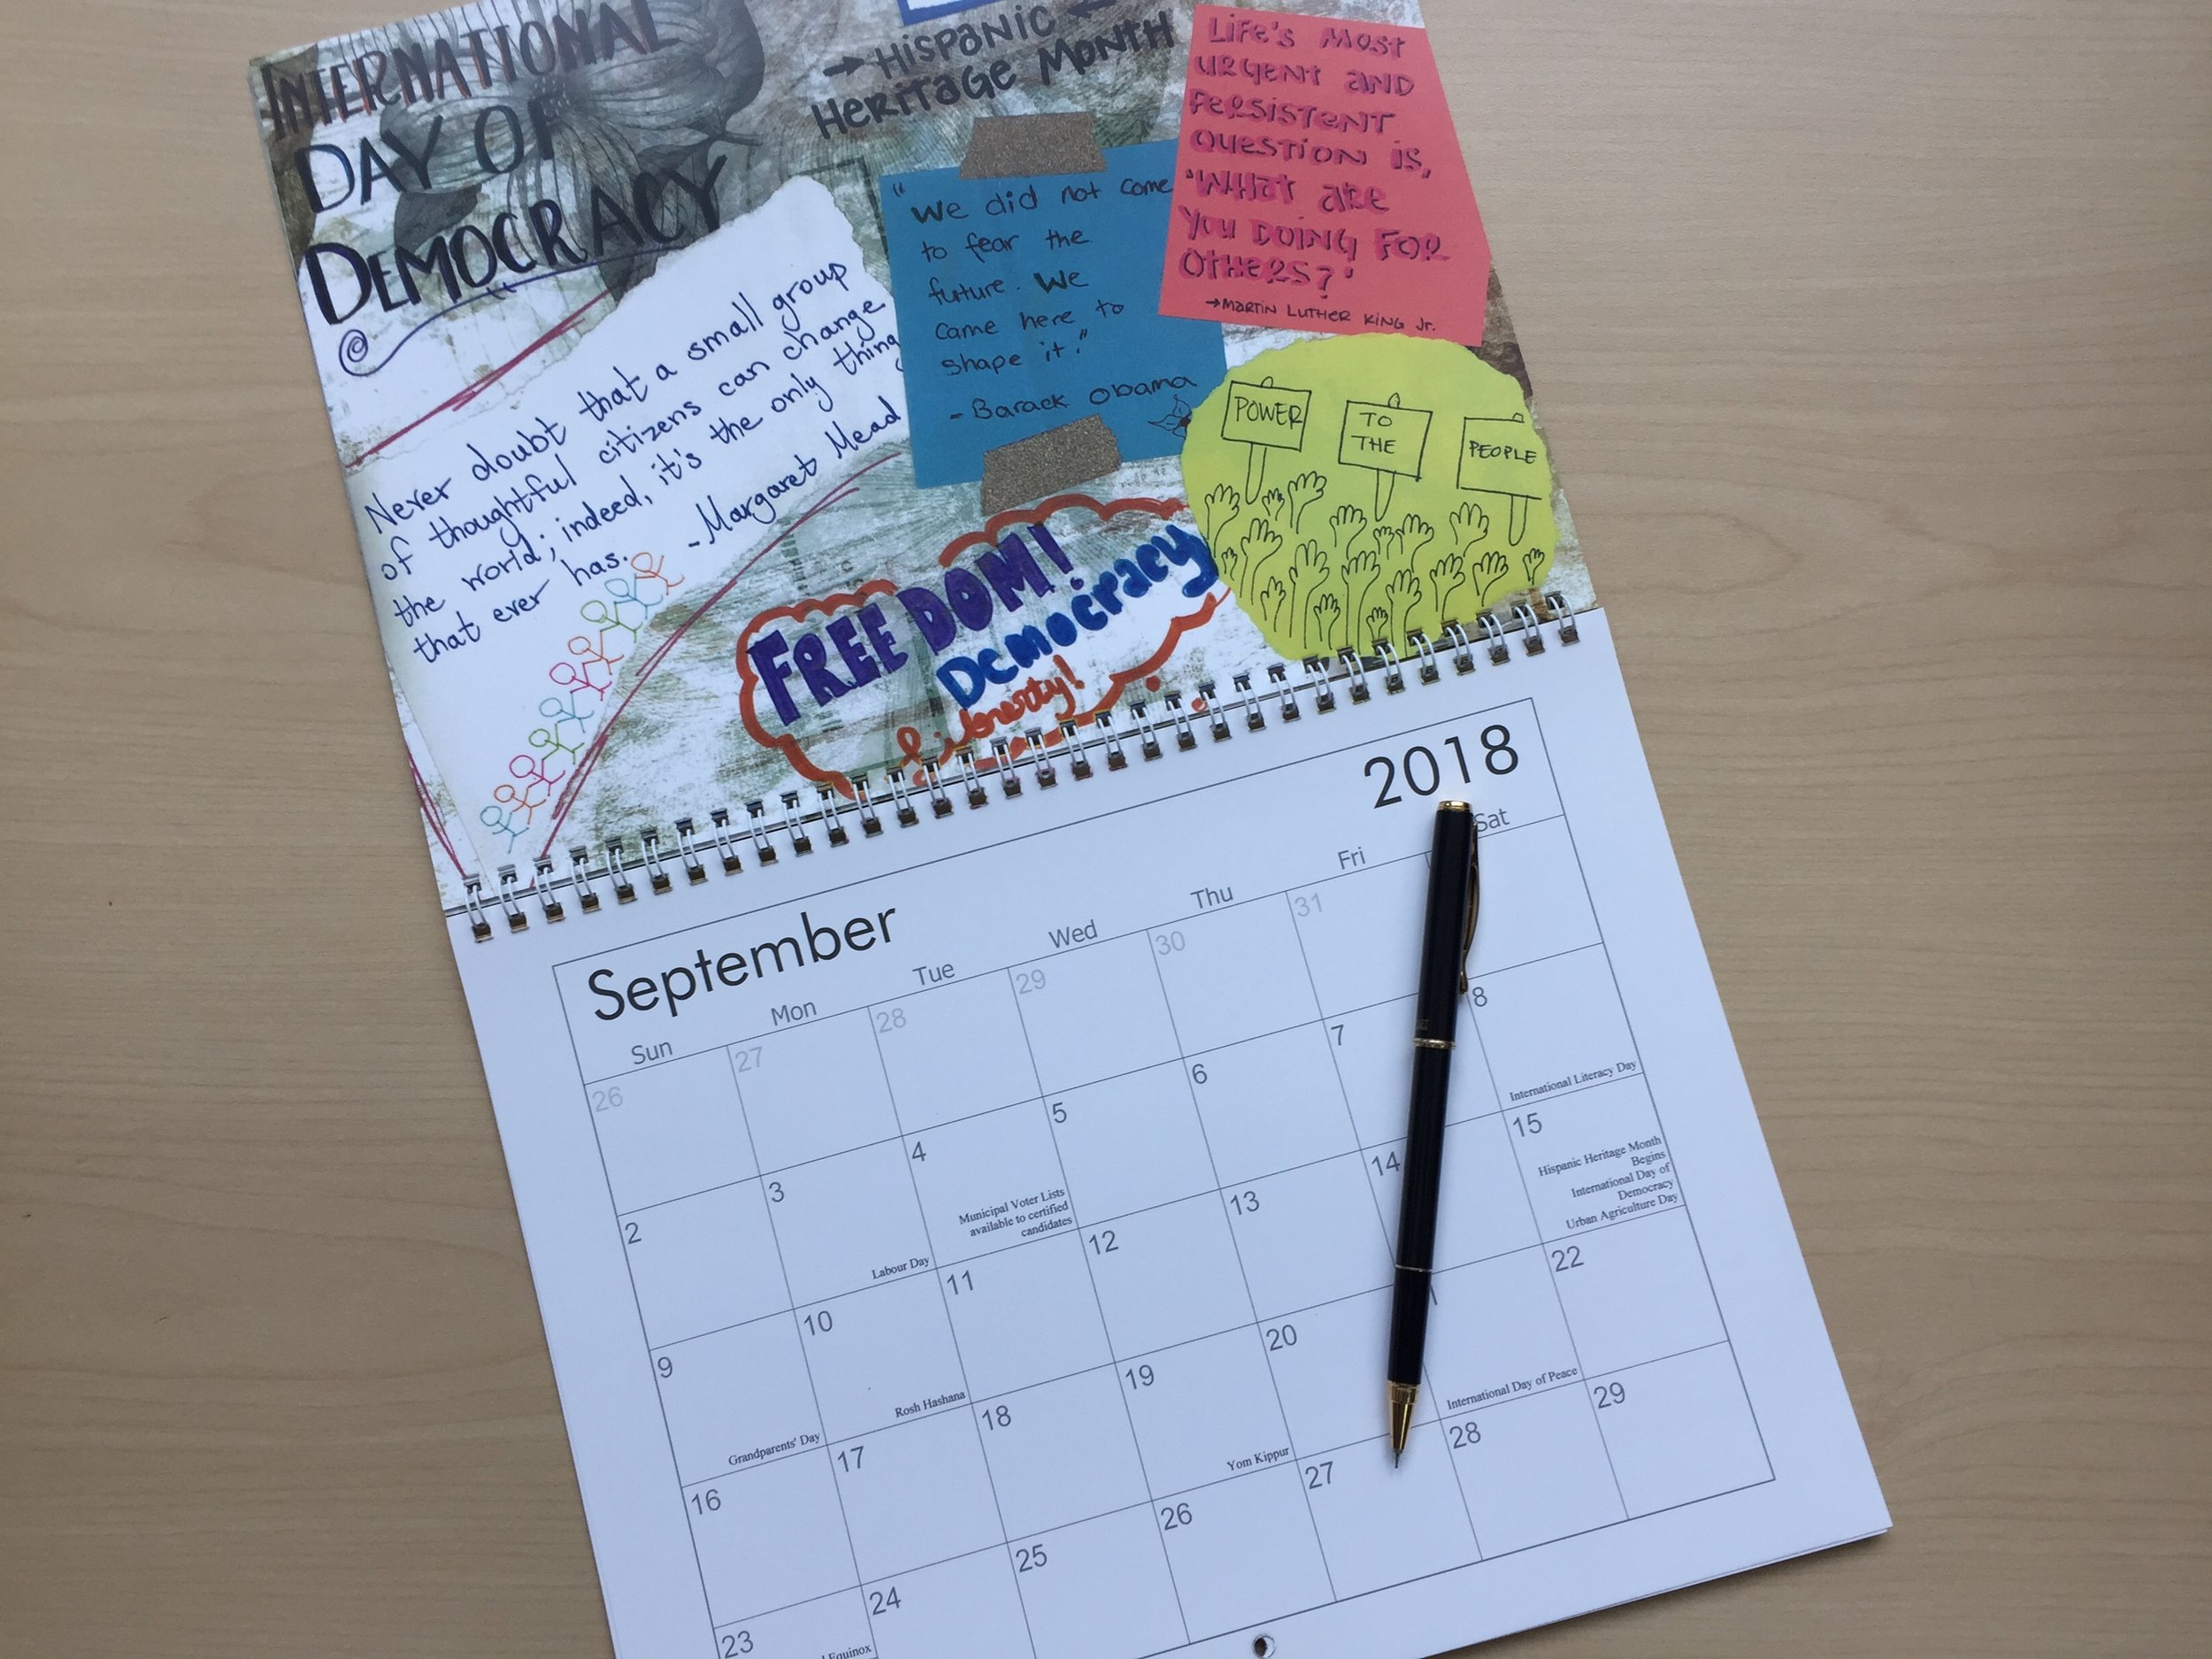 Special thanks to Amy, Gulcin, and Joanna for all of your time, dedication, and creativity in putting this calendar together.